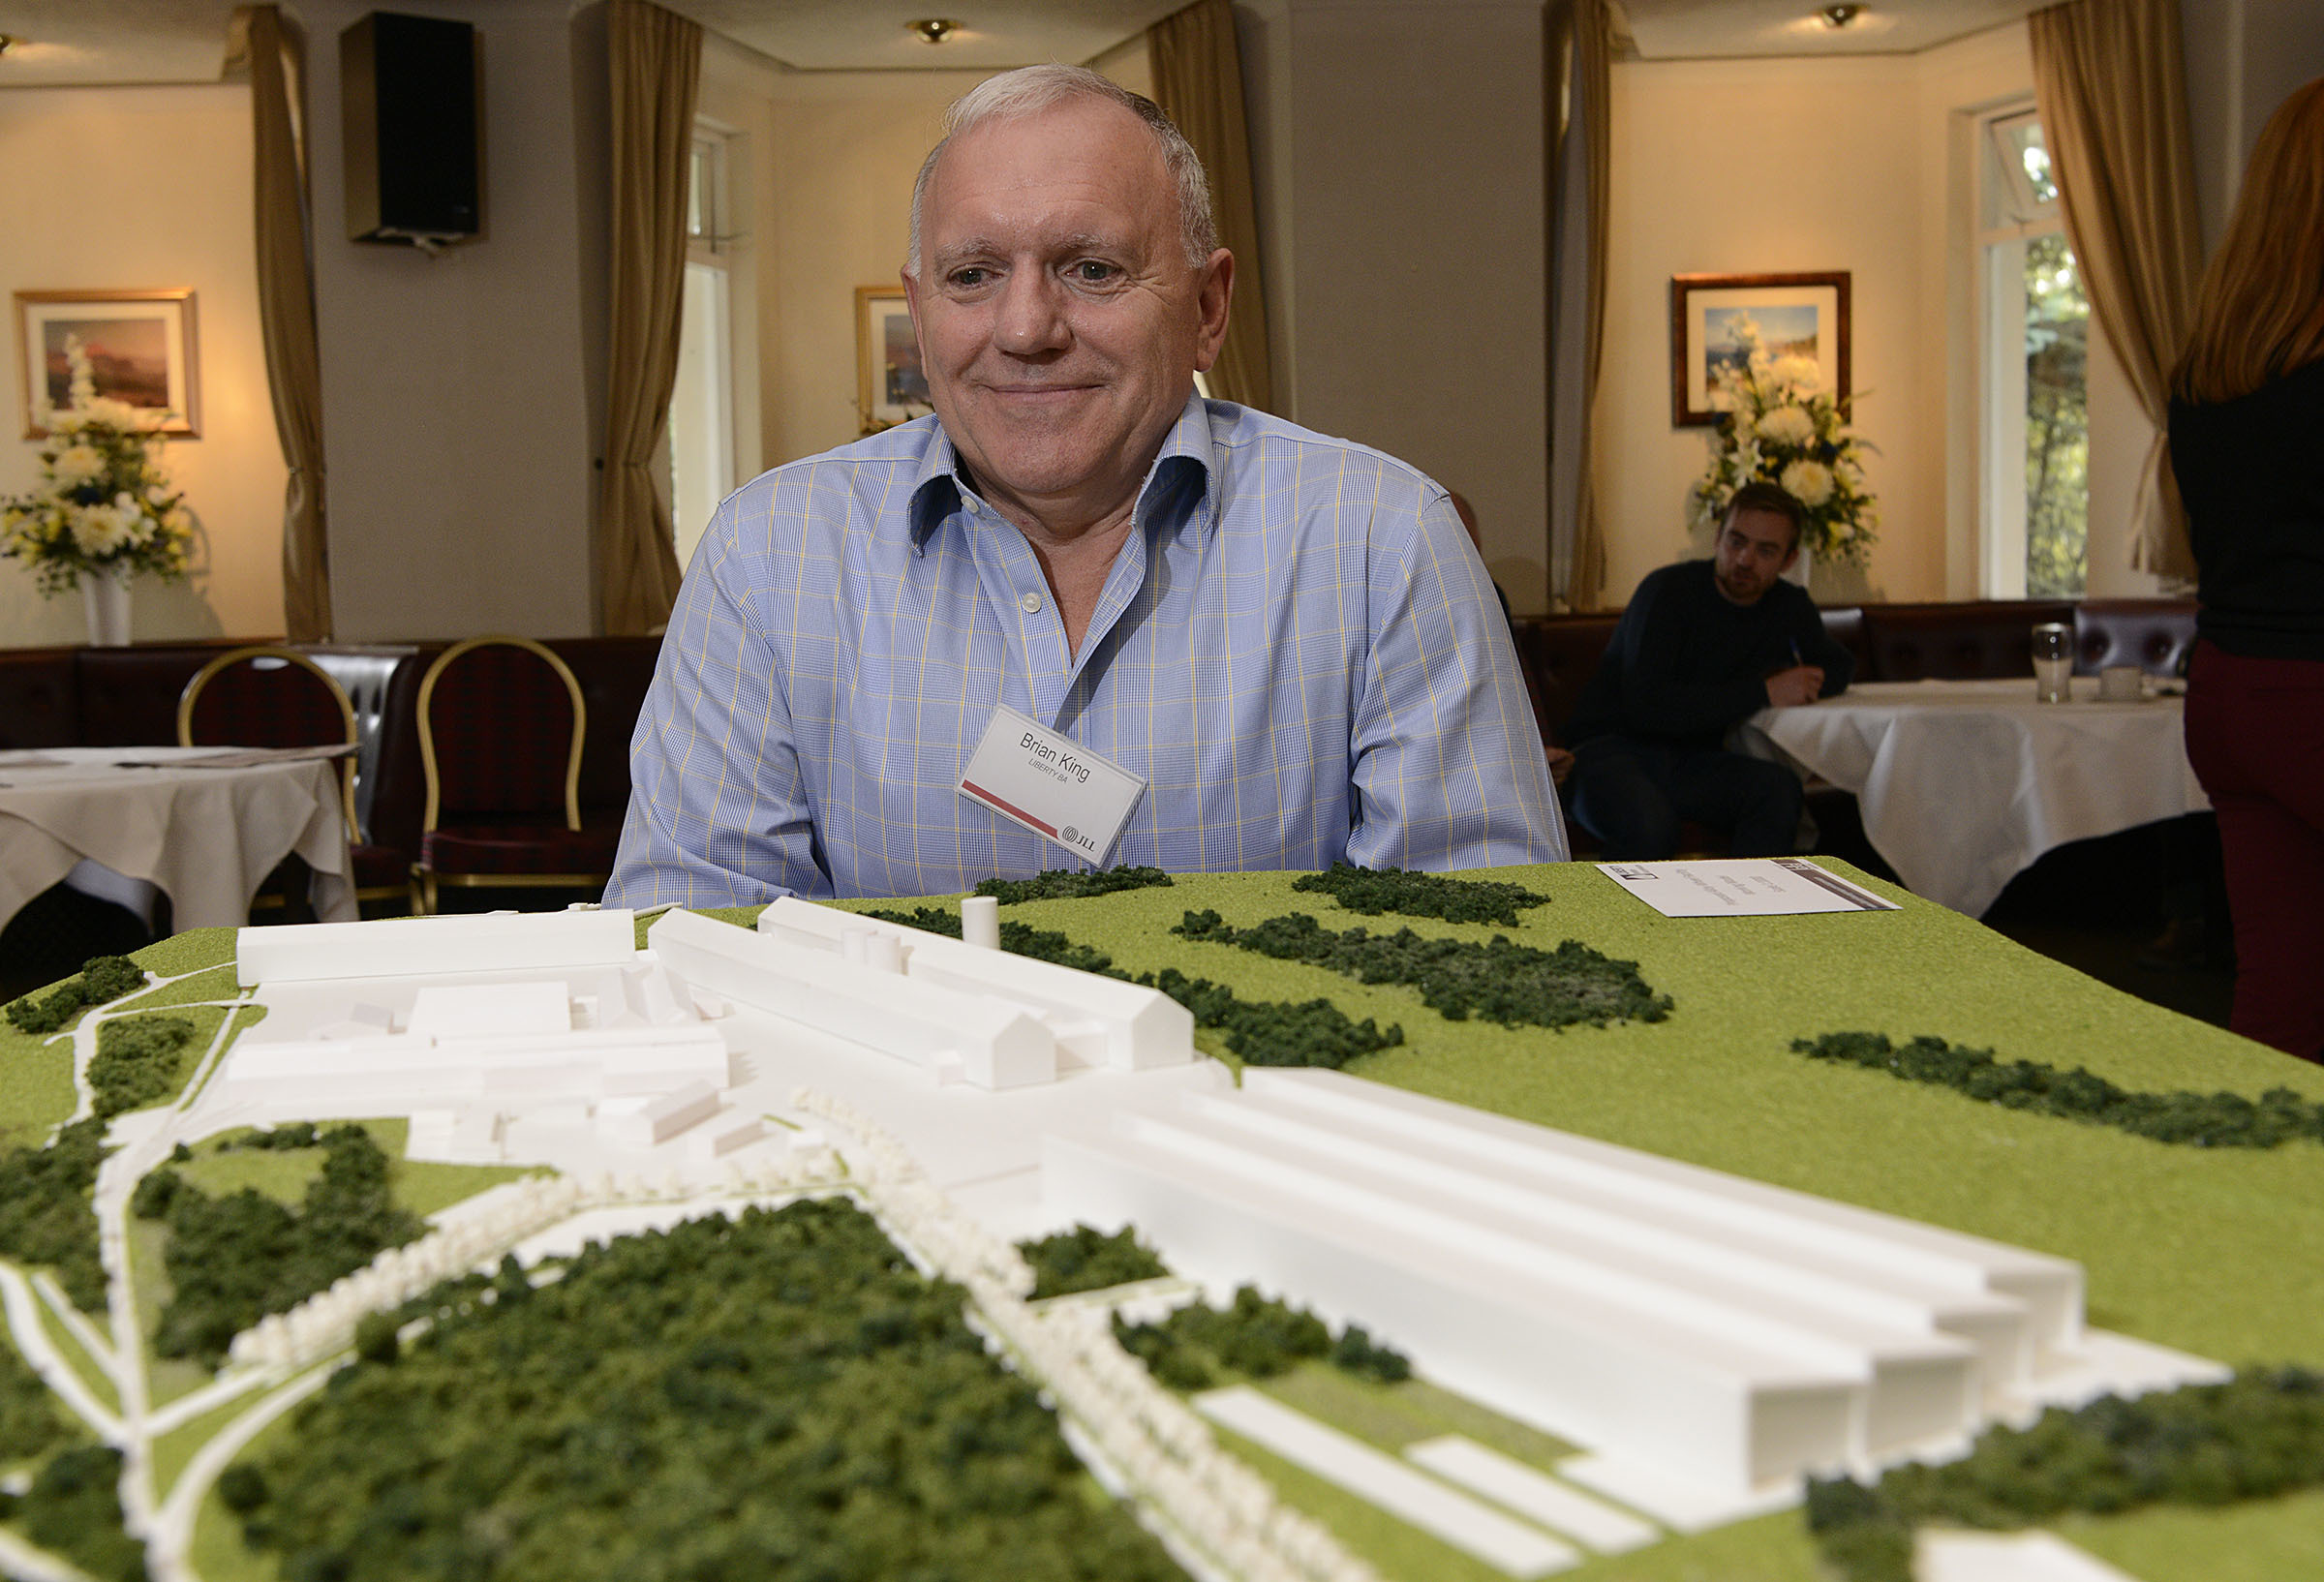 Smelter Director, Brian King with the 3D model of the proposed new factory.